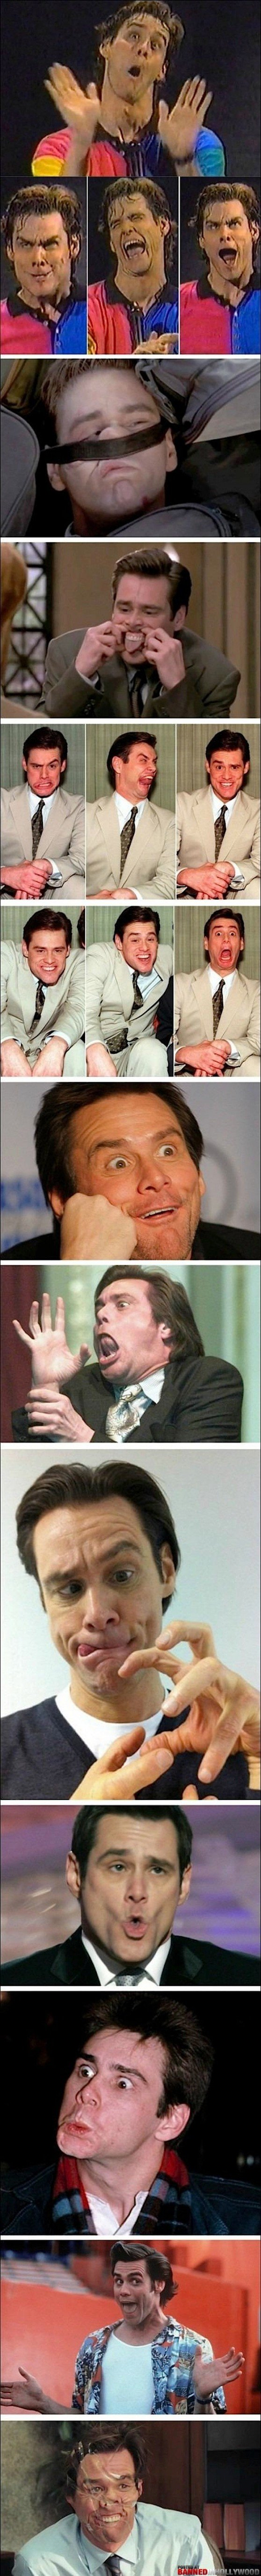 Jim-carrey-faces